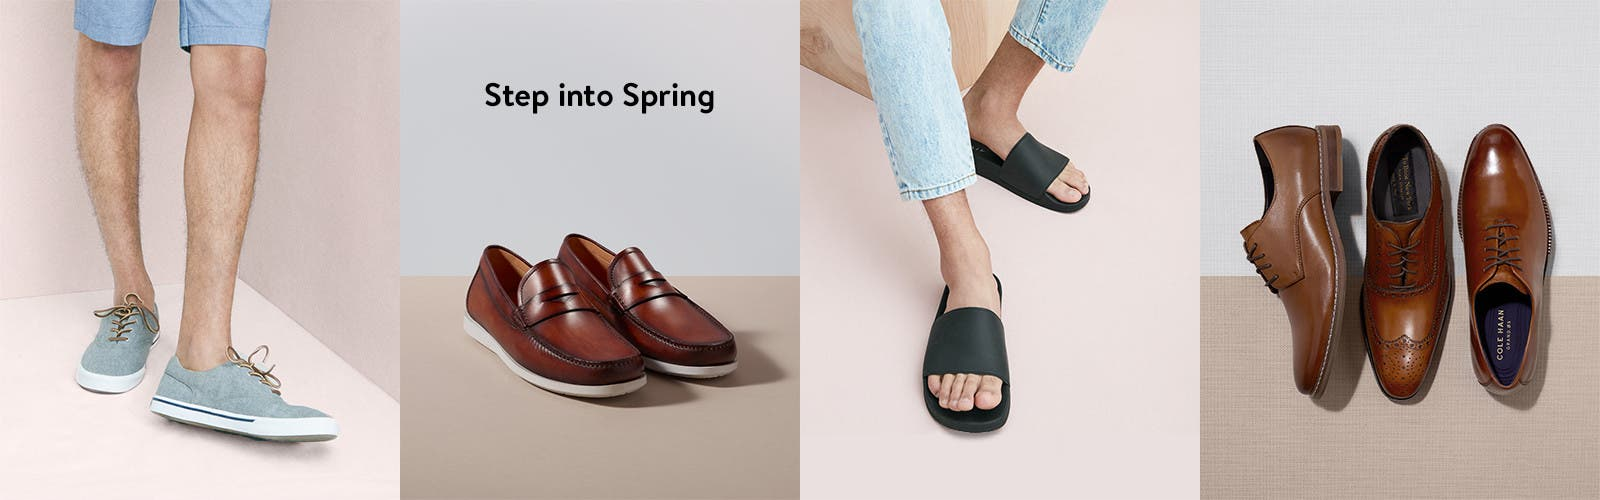 Step into spring.